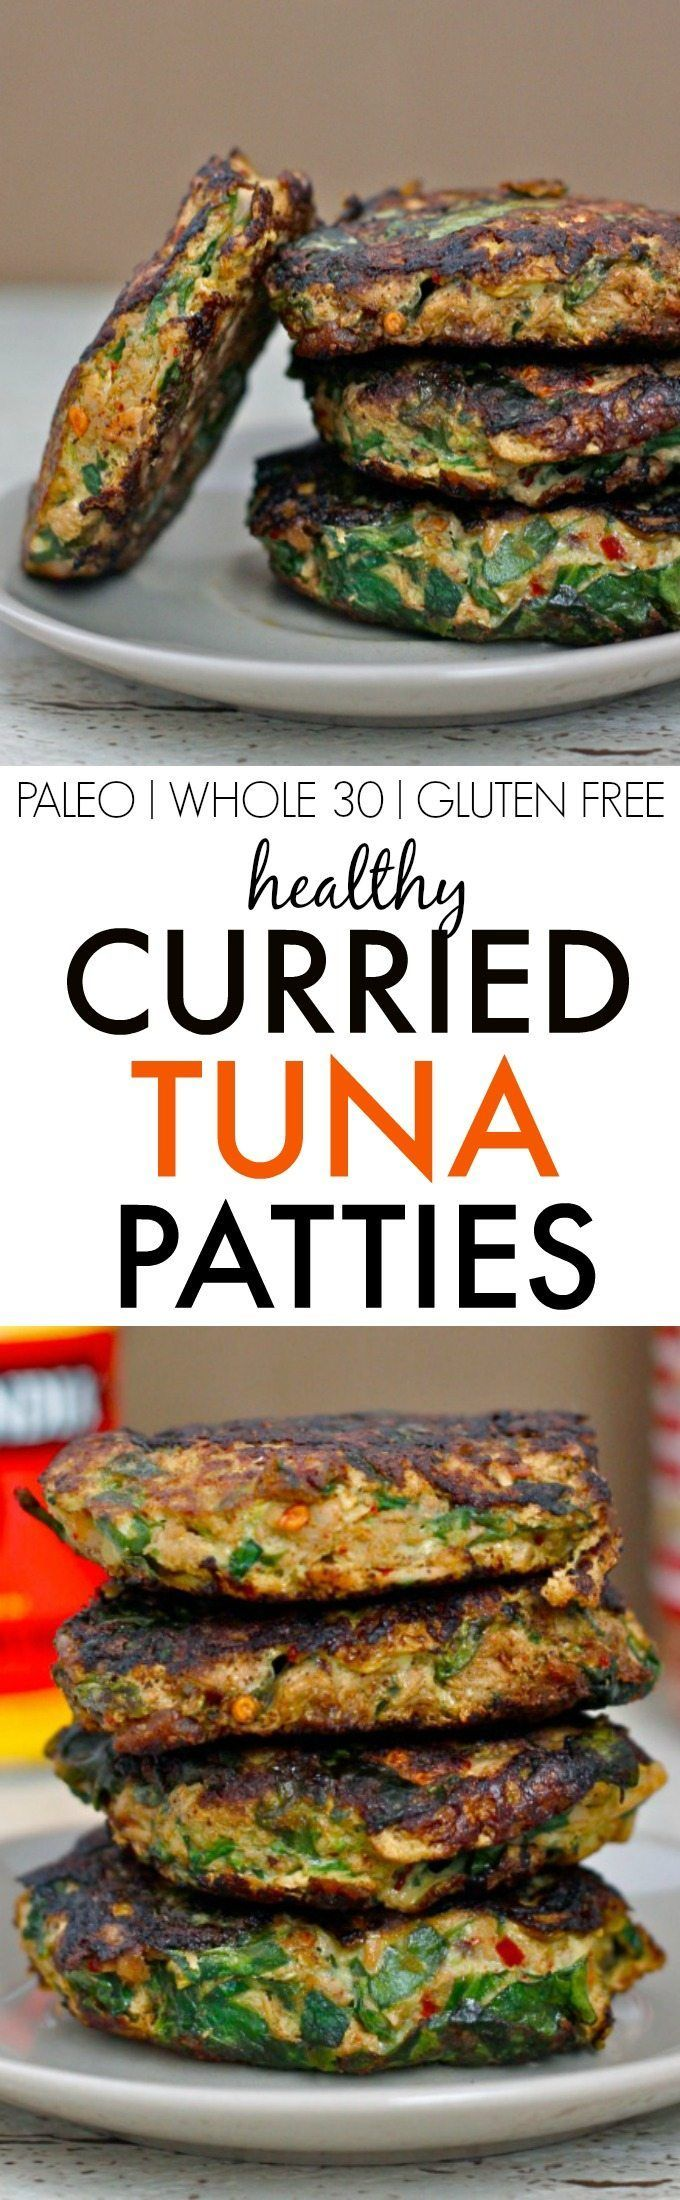 Easy HEALTHY Curried Tuna Patties- Cost effective, easy, simple and freezer friendly, these delicious and satisfying patties are perfect for meals, lunch boxes or a low carb snack! {paleo, WHOLE 30, gluten free, grain free recipe}- http://thebigmansworld.com